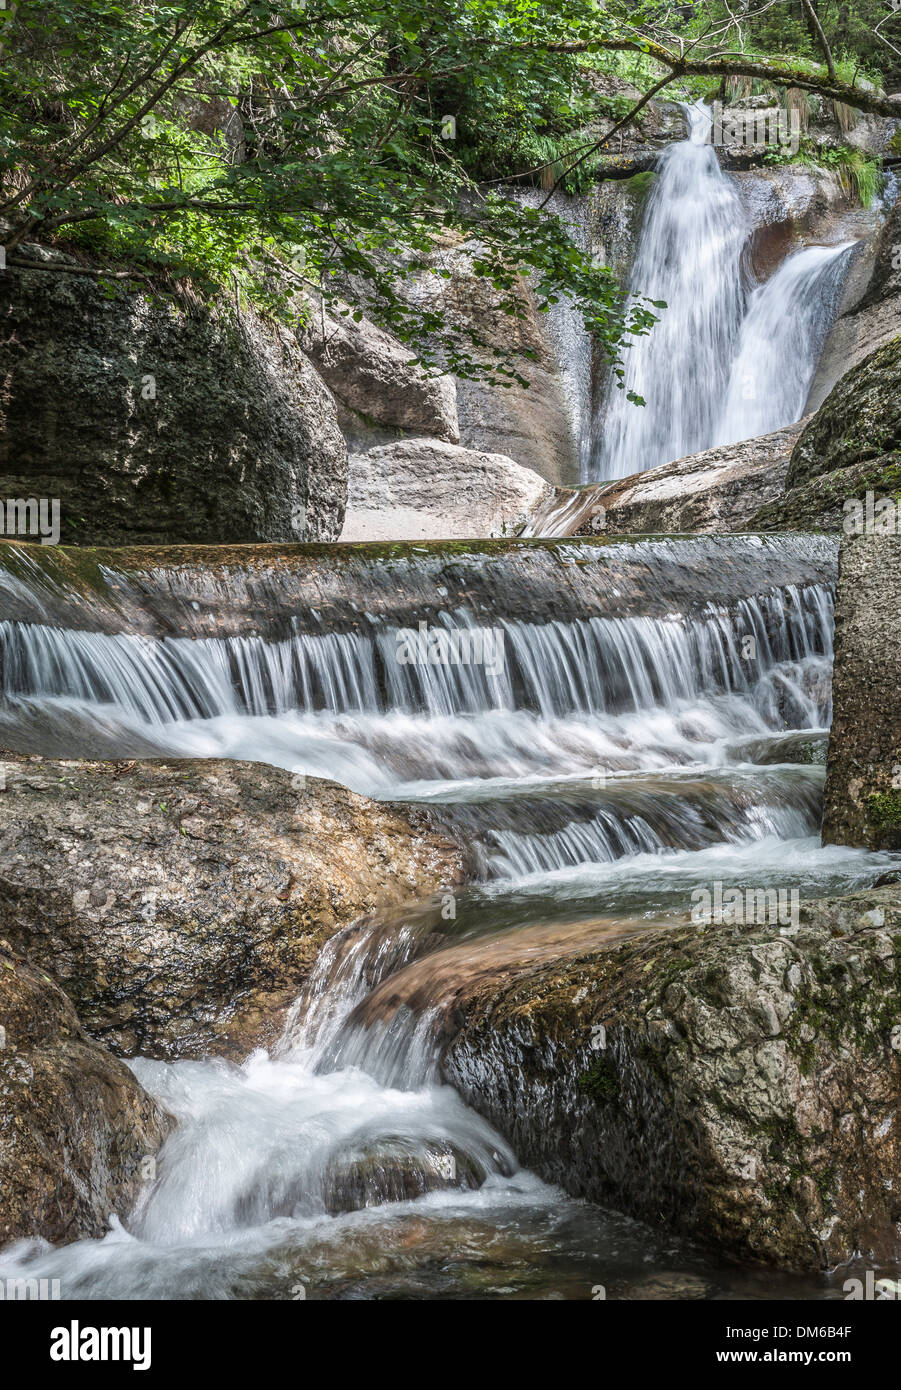 Mountain stream cascading over rocks, Alps, Canale d'Agordo, Veneto, Italy - Stock Image